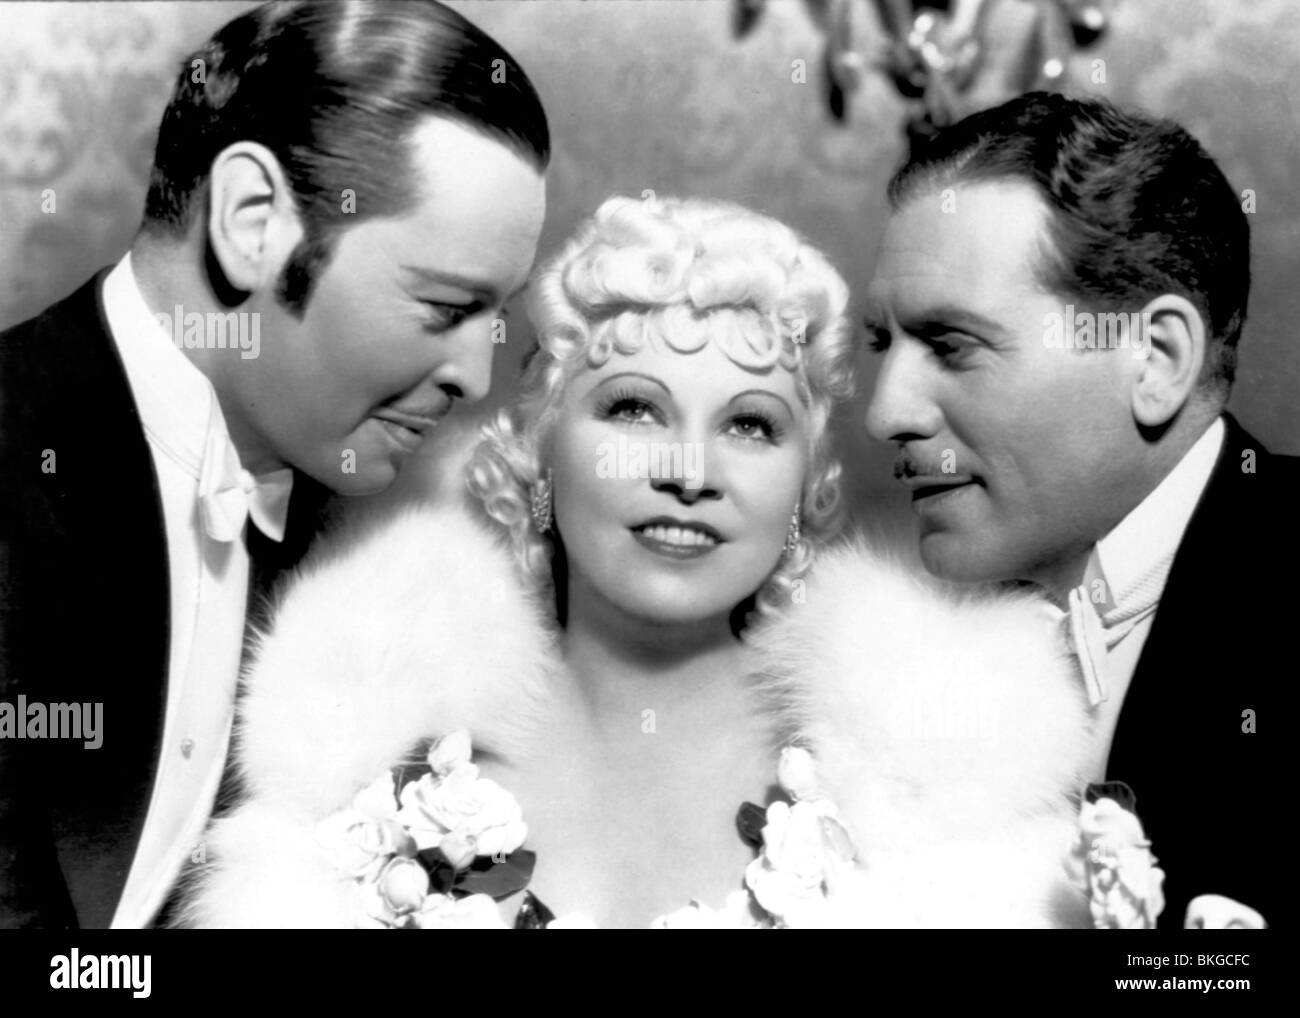 GOIN' TO TOWN (1935) MONROE OWSLEY, MAE WEST, PAUL CAVANAGH GTTW 002 - Stock Image